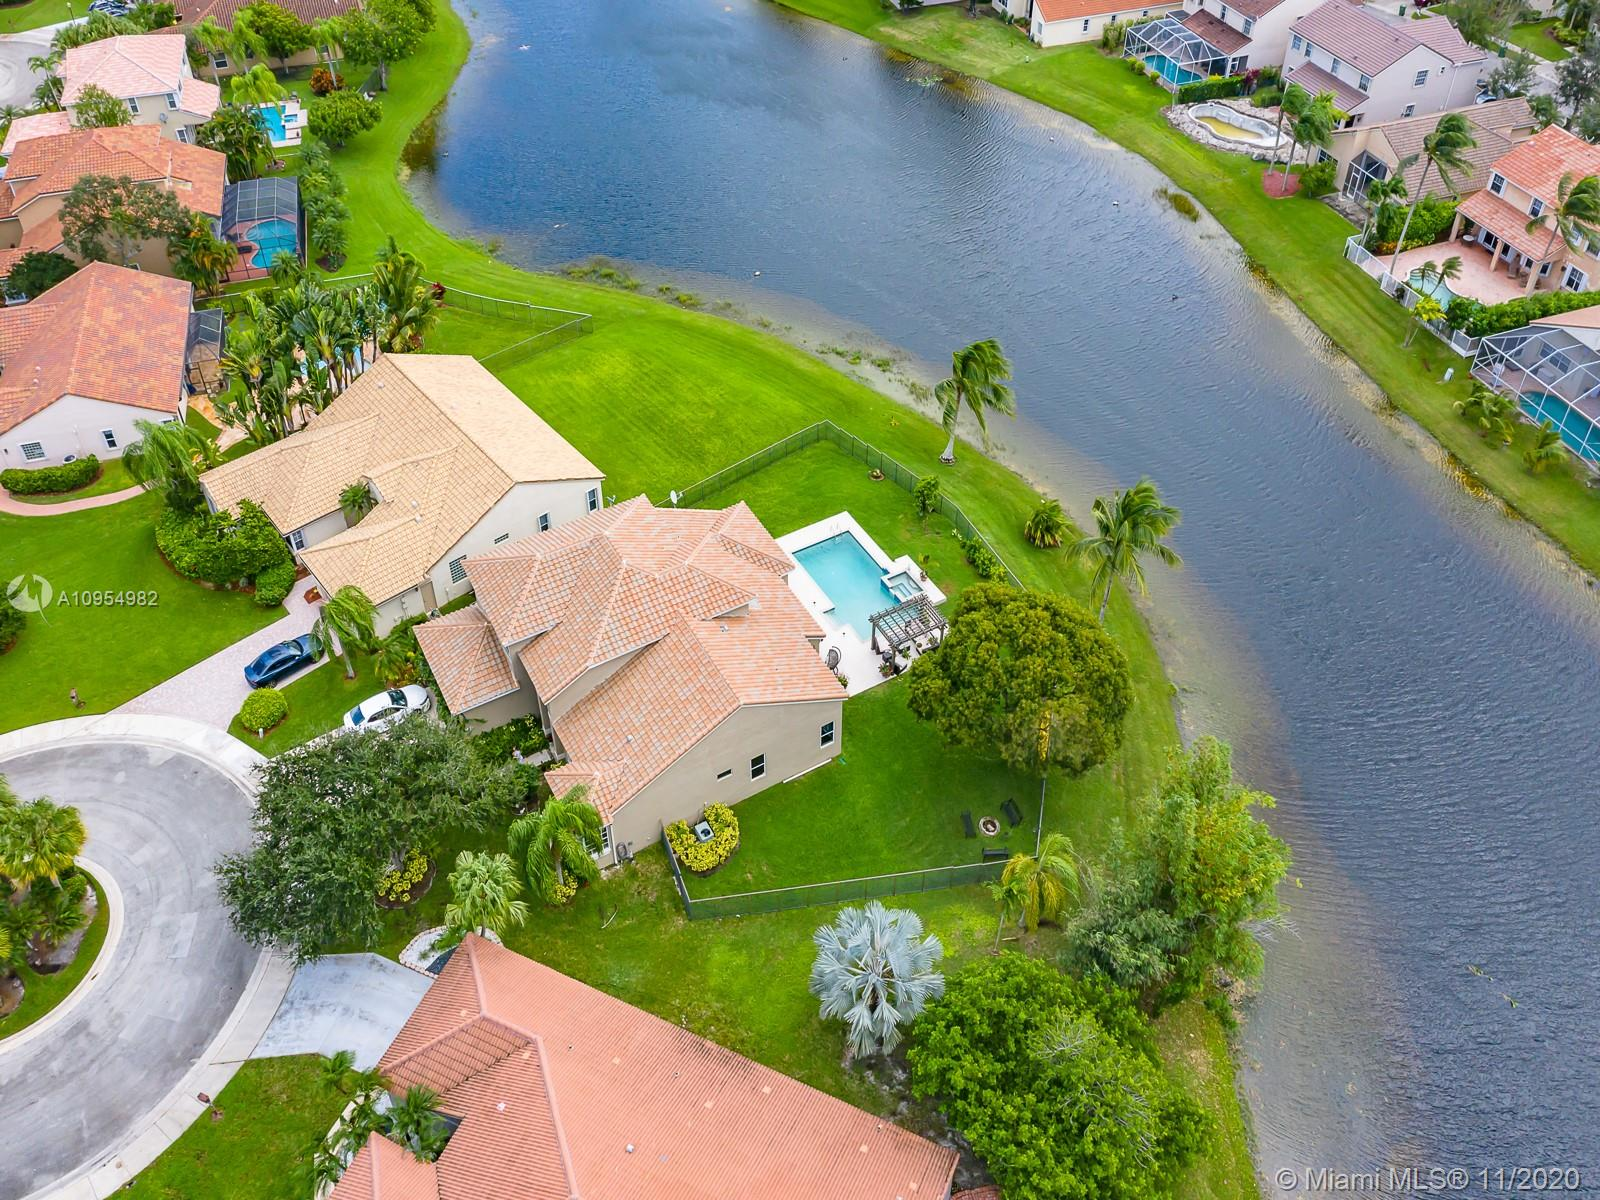 AMAZING 6 BEDROOMS, 4 FULL BATHROOMS, POOL HOME WITH BEAUTIFUL PANORAMIC LAKE VIEWS ON A CUL-DE-SAC, RARELY AVAILABLE OVER 17,000 SQ FT. LOT, NEW 2020 ROOF! WONDERFUL FLOOR PLAN, KITCHEN W/WOOD CABINETS, GRANITE COUNTERTOPS, AND STAINLESS STEEL APPLIANCES, SUBZERO REFRIGERATOR 2019 AND NEW MICROWAVE OVEN 2020, MASTER BEDROOM SUITE PLUS ADDITIONAL BEDROOM ON 1ST FLOOR, MASTER BATHROOM INCLUDES STEAM SHOWER & TUB, CALIFORNIA STYLE CLOSETS, REMODELED JACK AND JILL BATHROOM, 2 A/C UNITS WITH UV LIGHTS, SALT WATER POOL WITH NEW PUMP SYSTEM 2020, FULLY FENCED BACK YARD, NEW AUTO SPRINKLER SYSTEM AND MUCH MORE!! EXCELLENT LOCATION AND GREAT SCHOOLS A MUST SEE IN THE FABULOUS GATED COMMUNITY OF THE LAKES!